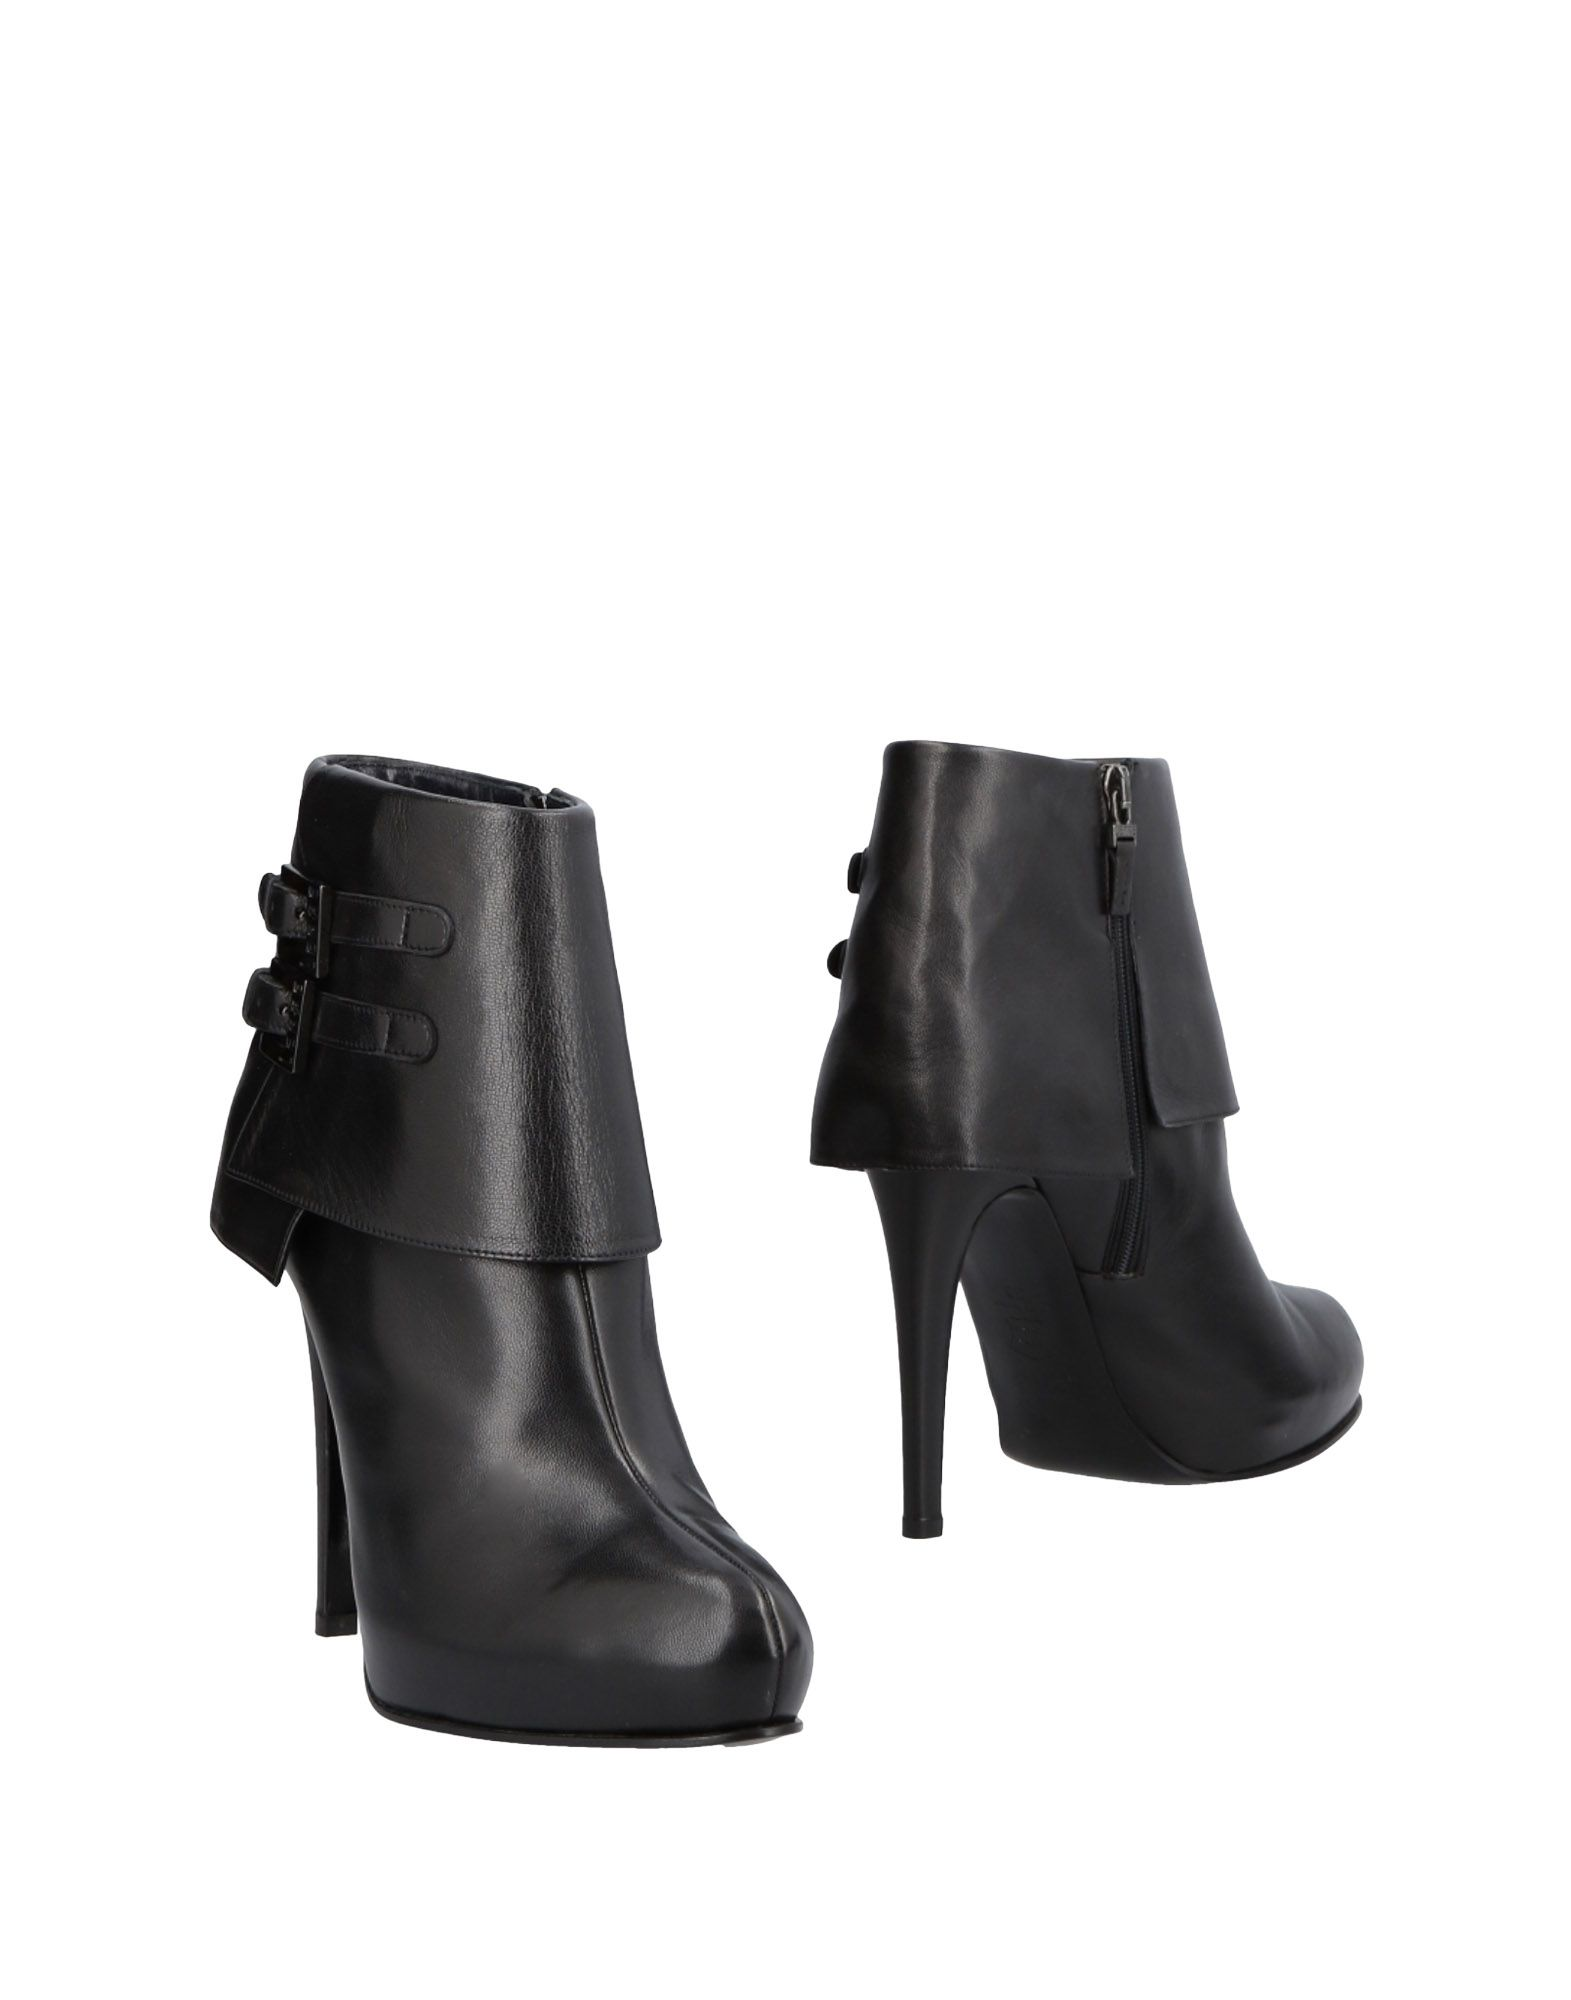 Lerre Ankle Boot Boots - Women Lerre Ankle Boots Boot online on  Australia - 11488158FH 34d717